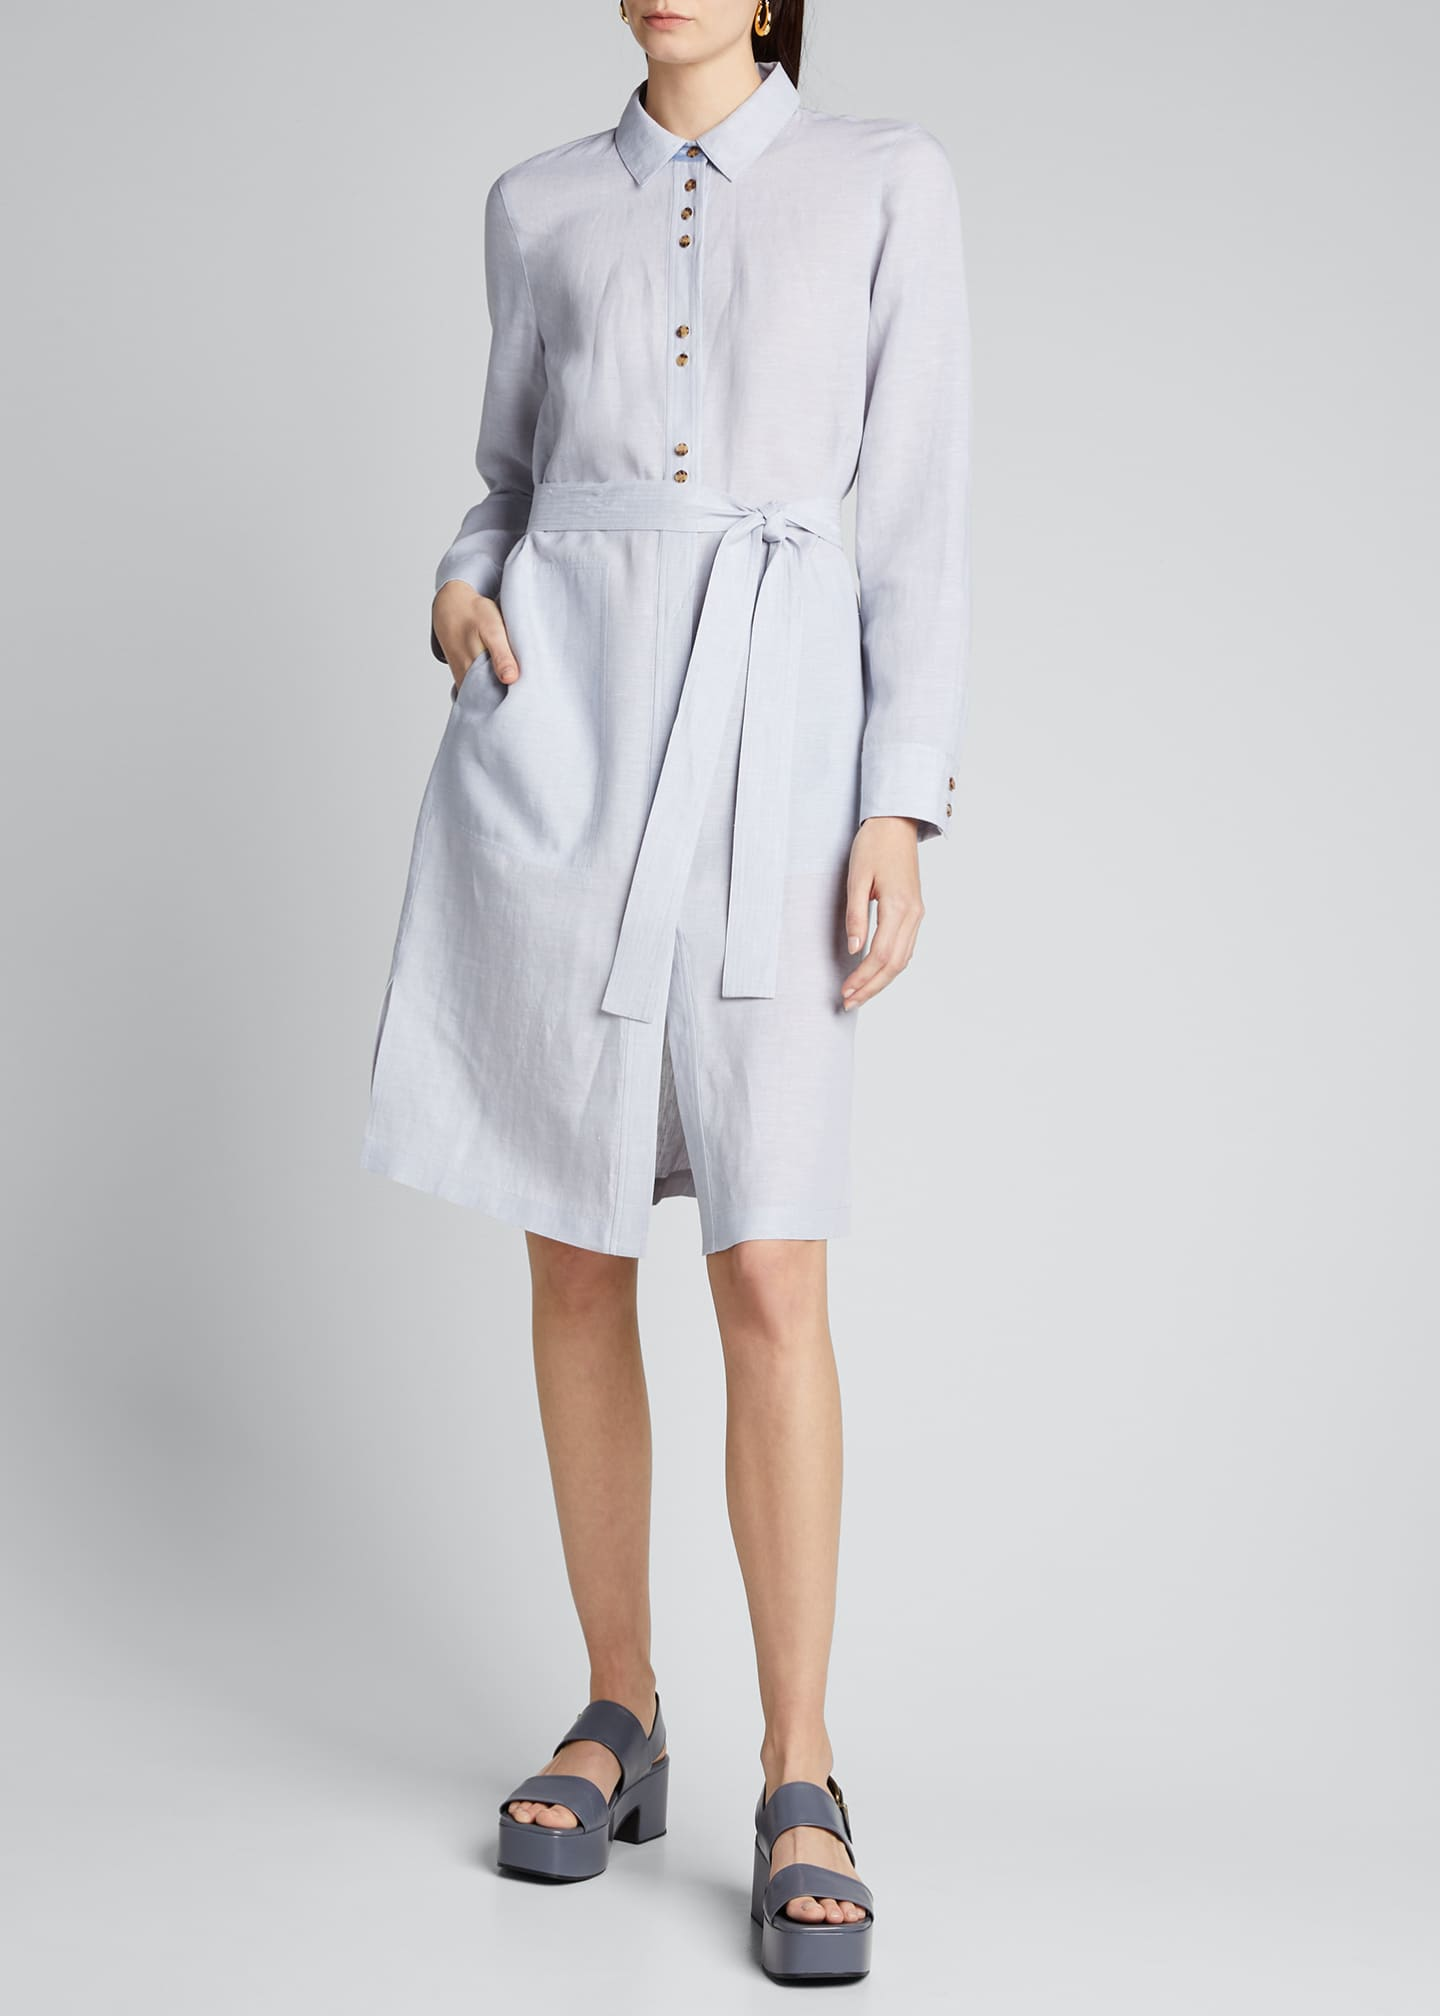 Image 3 of 5: Michlle Illustrious Linen Duster Dress